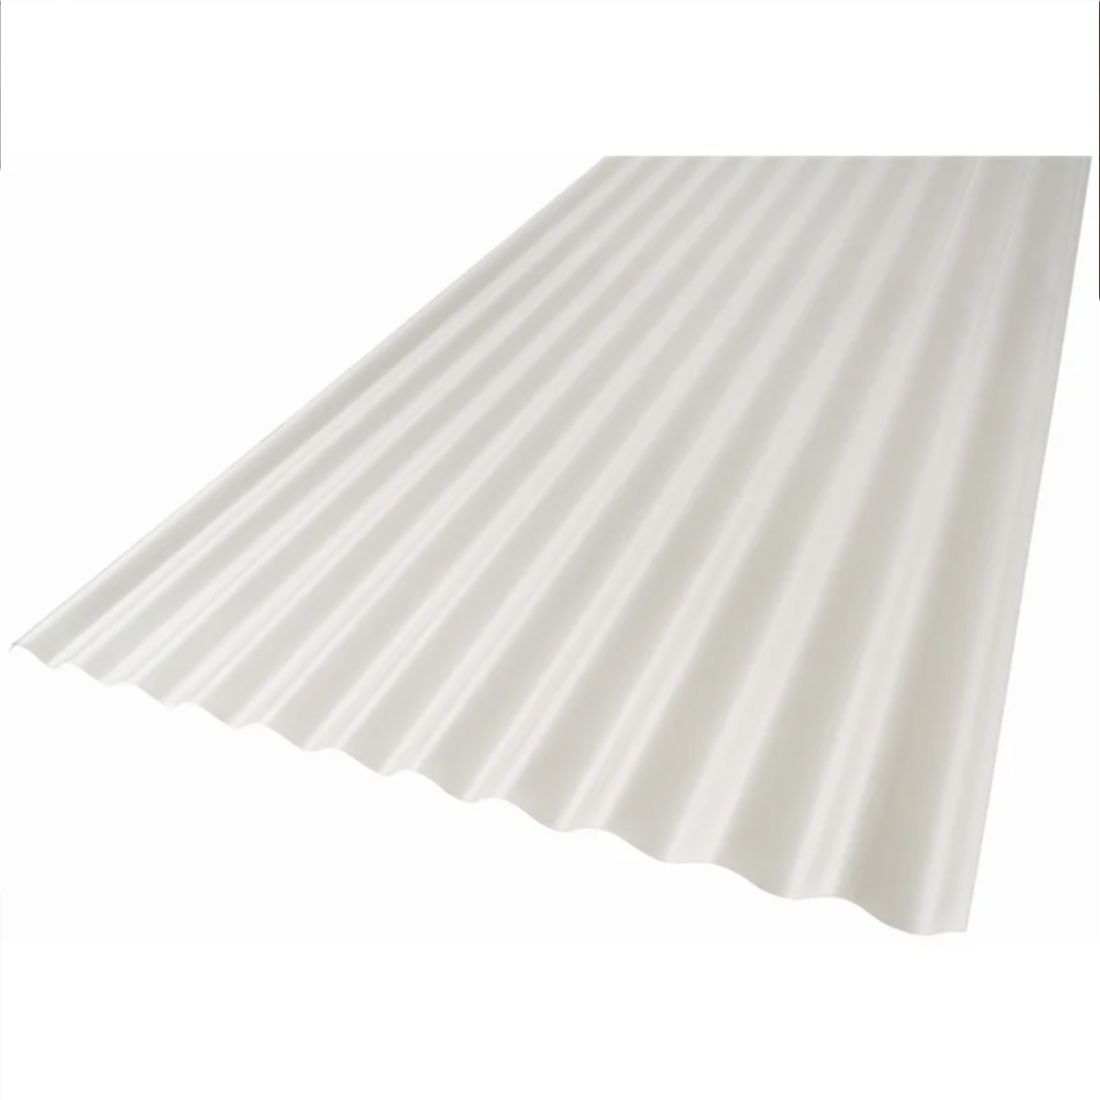 CoolTech Corrugated Ice 4800 x 860mm